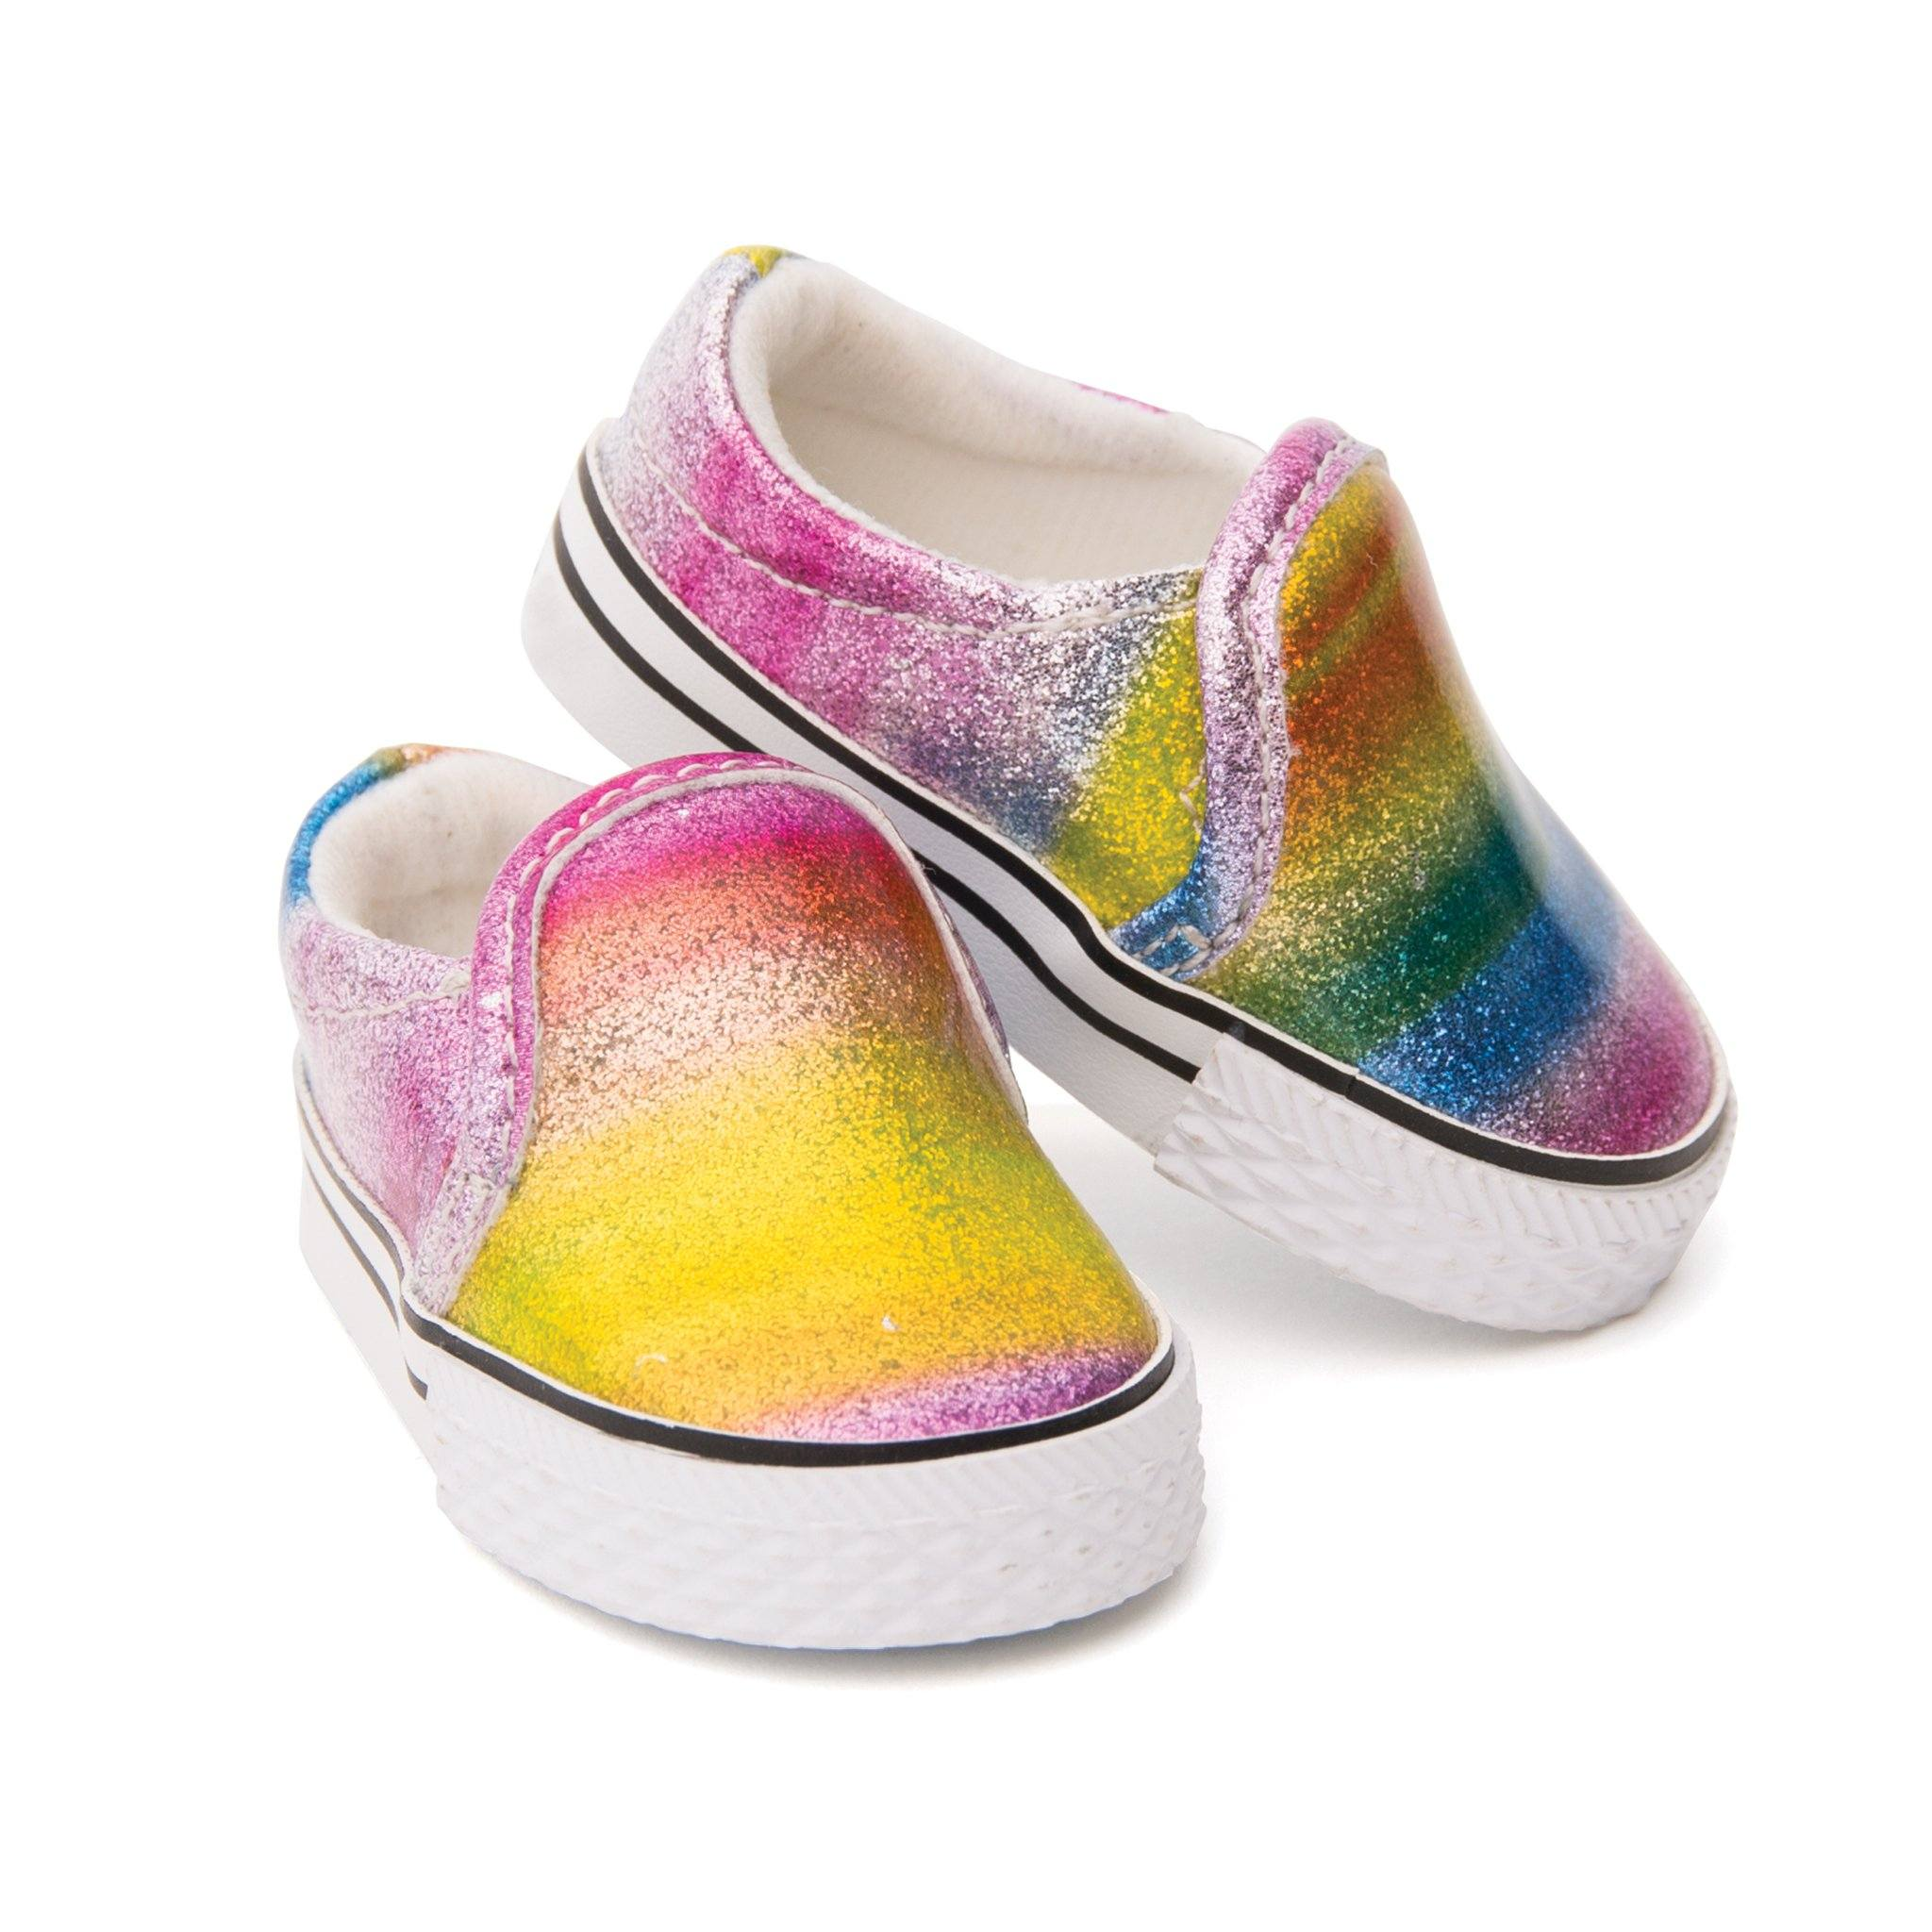 Colourful slip-on shoes for 18 inch dolls.  Quality doll footwear by Maplelea.